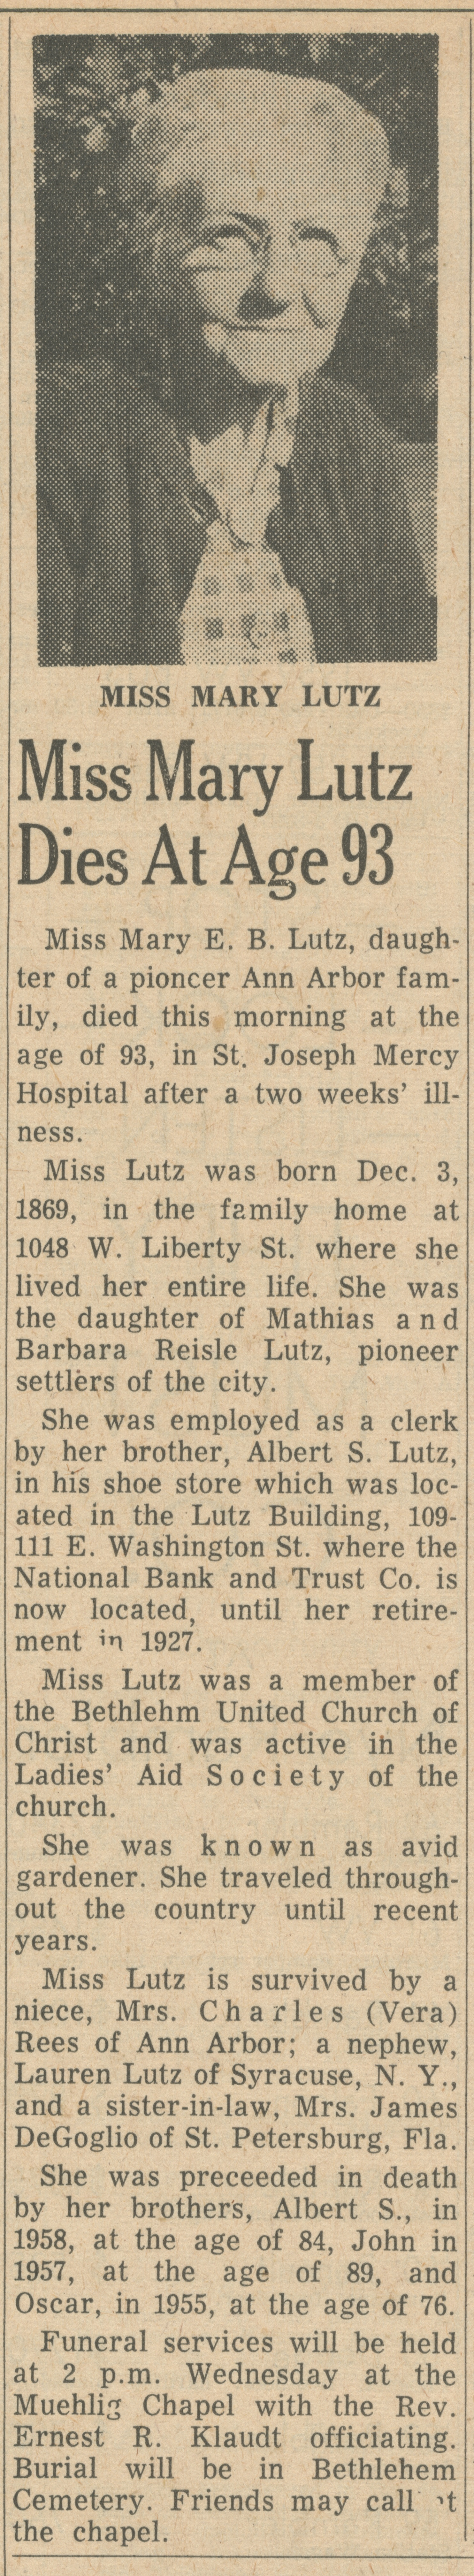 Miss Mary Lutz Dies At Age 93 image